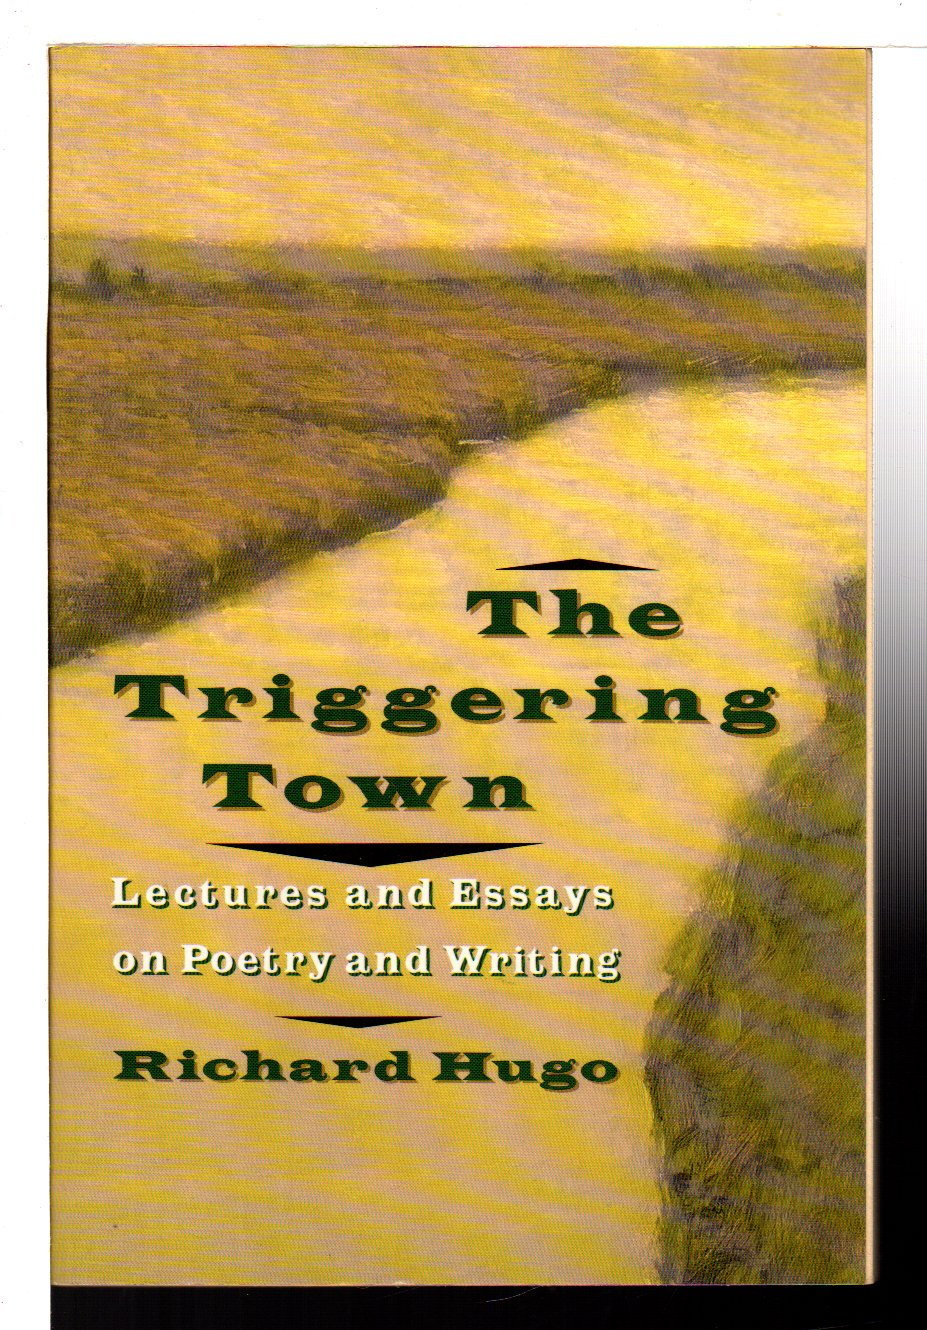 HUGO, RICHARD (1923-1982) - THE TRIGGERING TOWN: Lectures and Essays on Poetry and Writing.